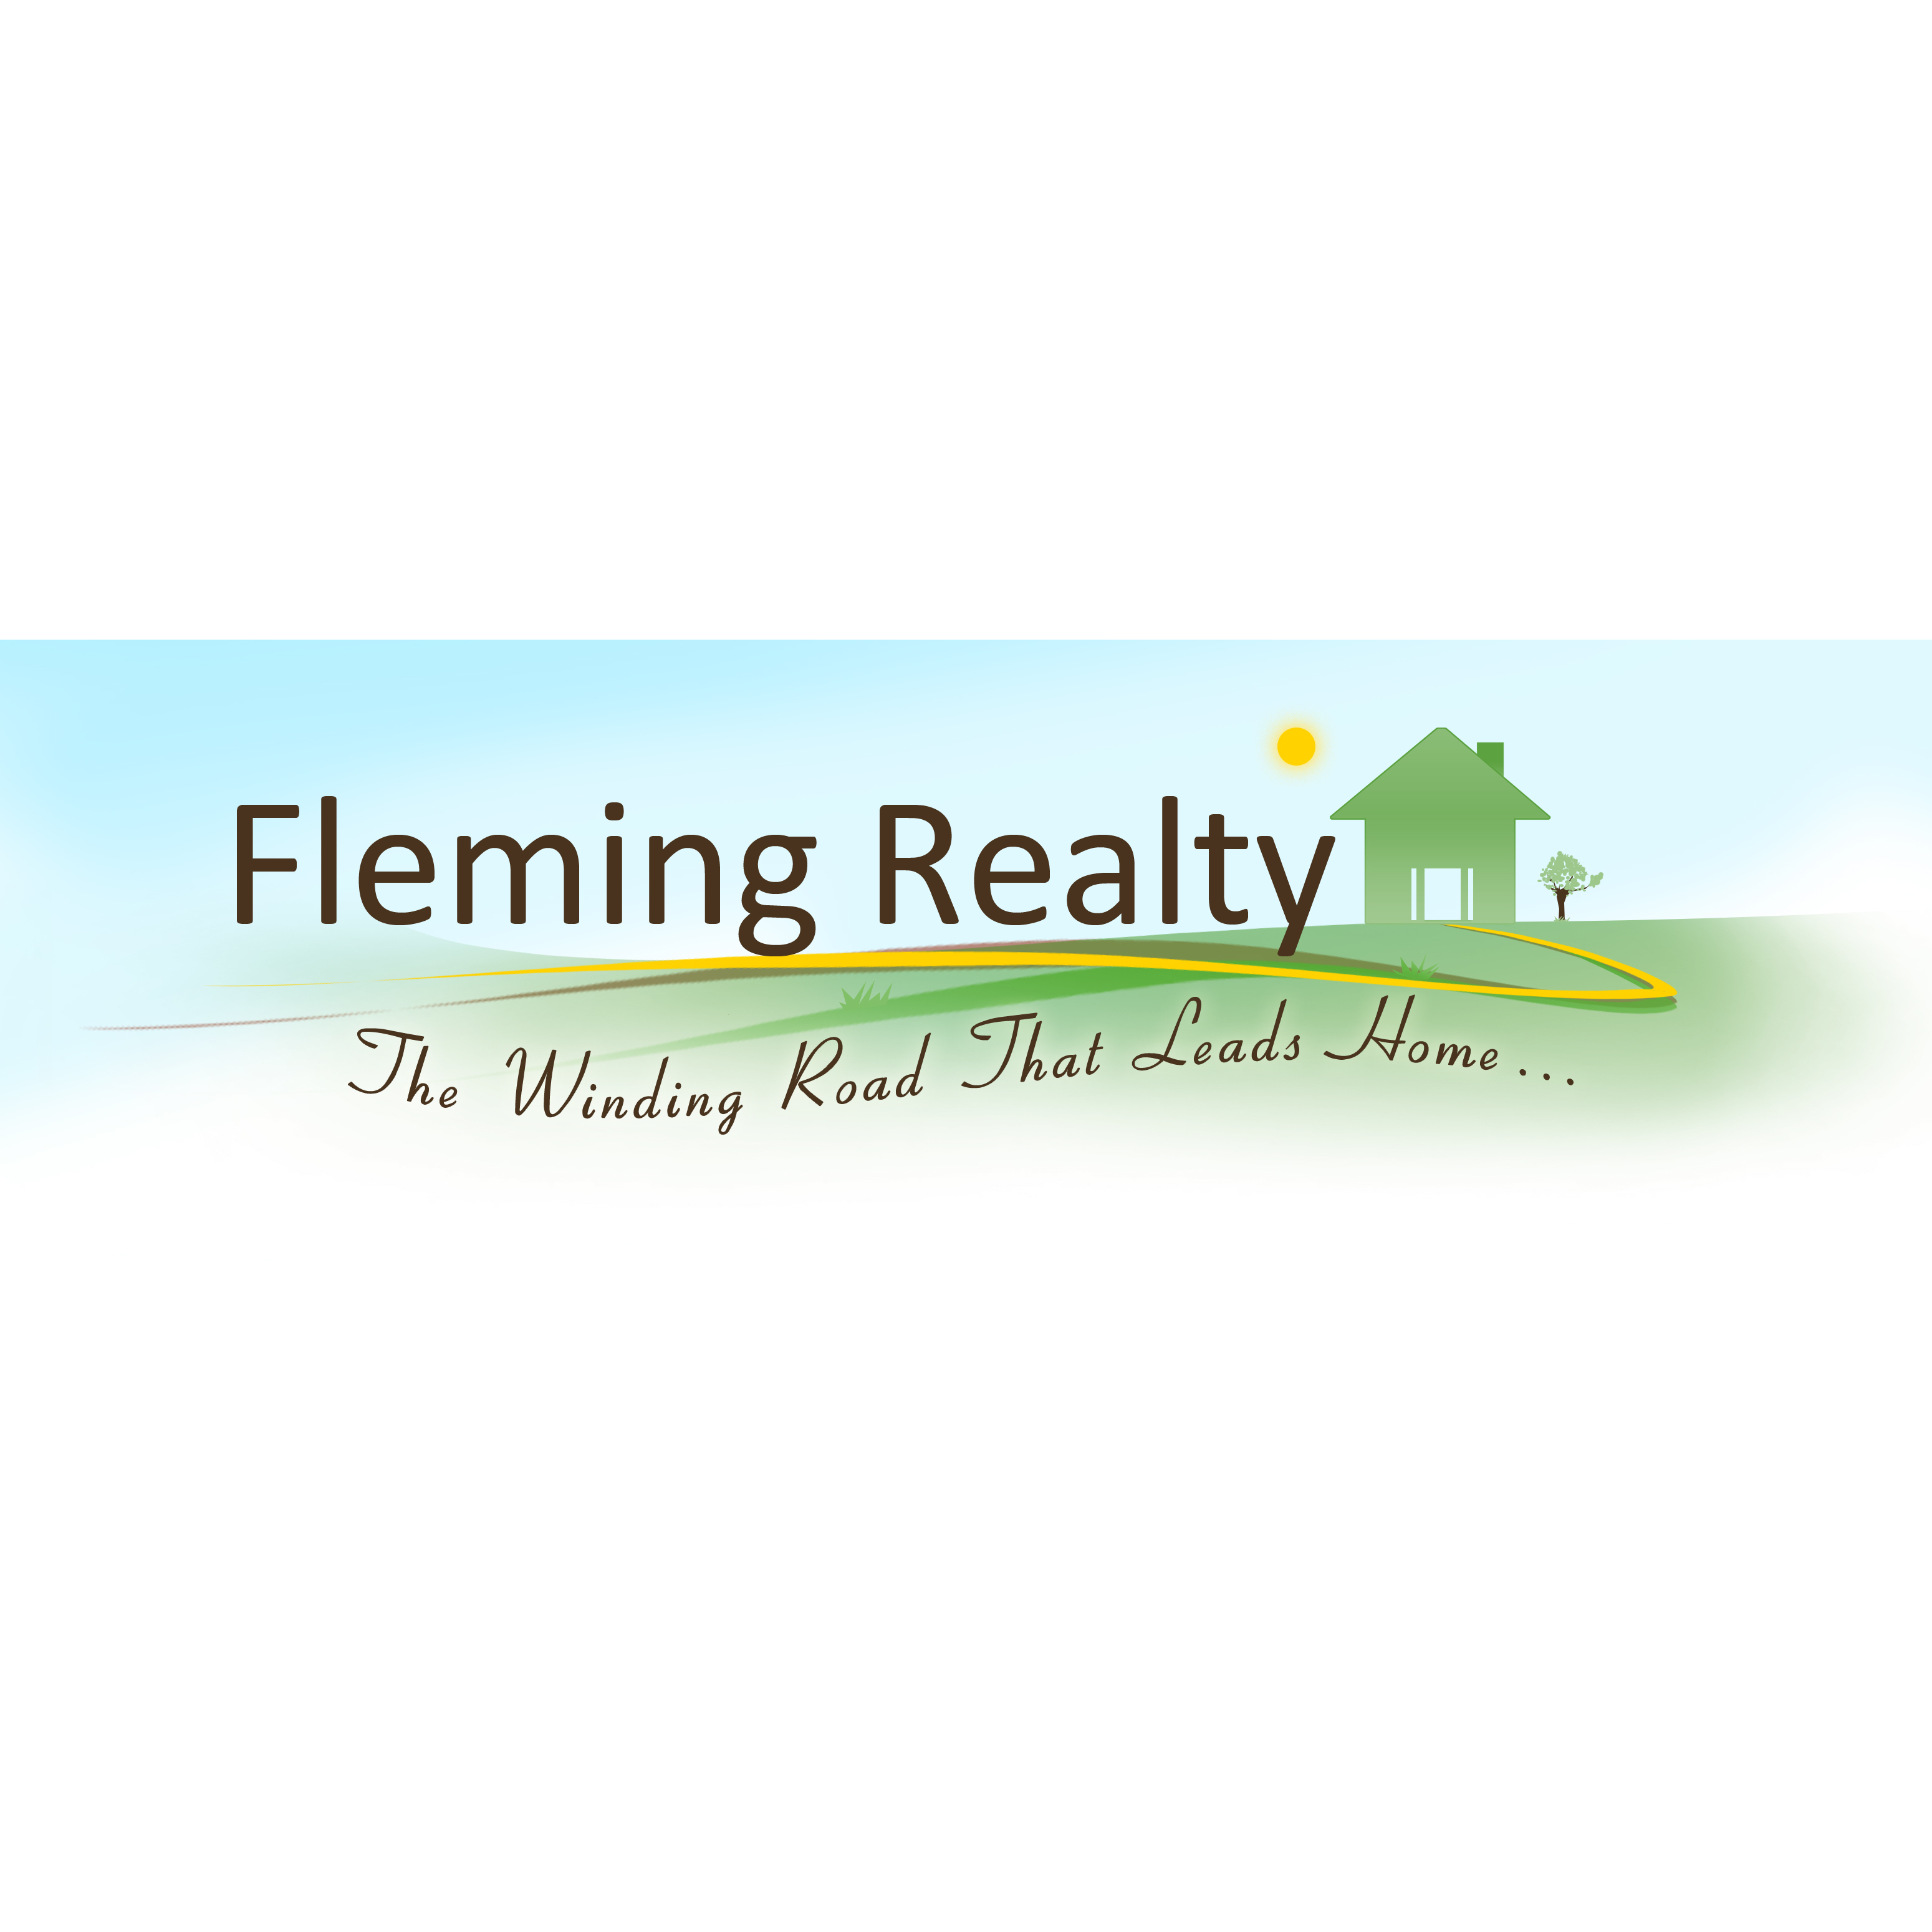 Fleming Realty Real Estate Agency